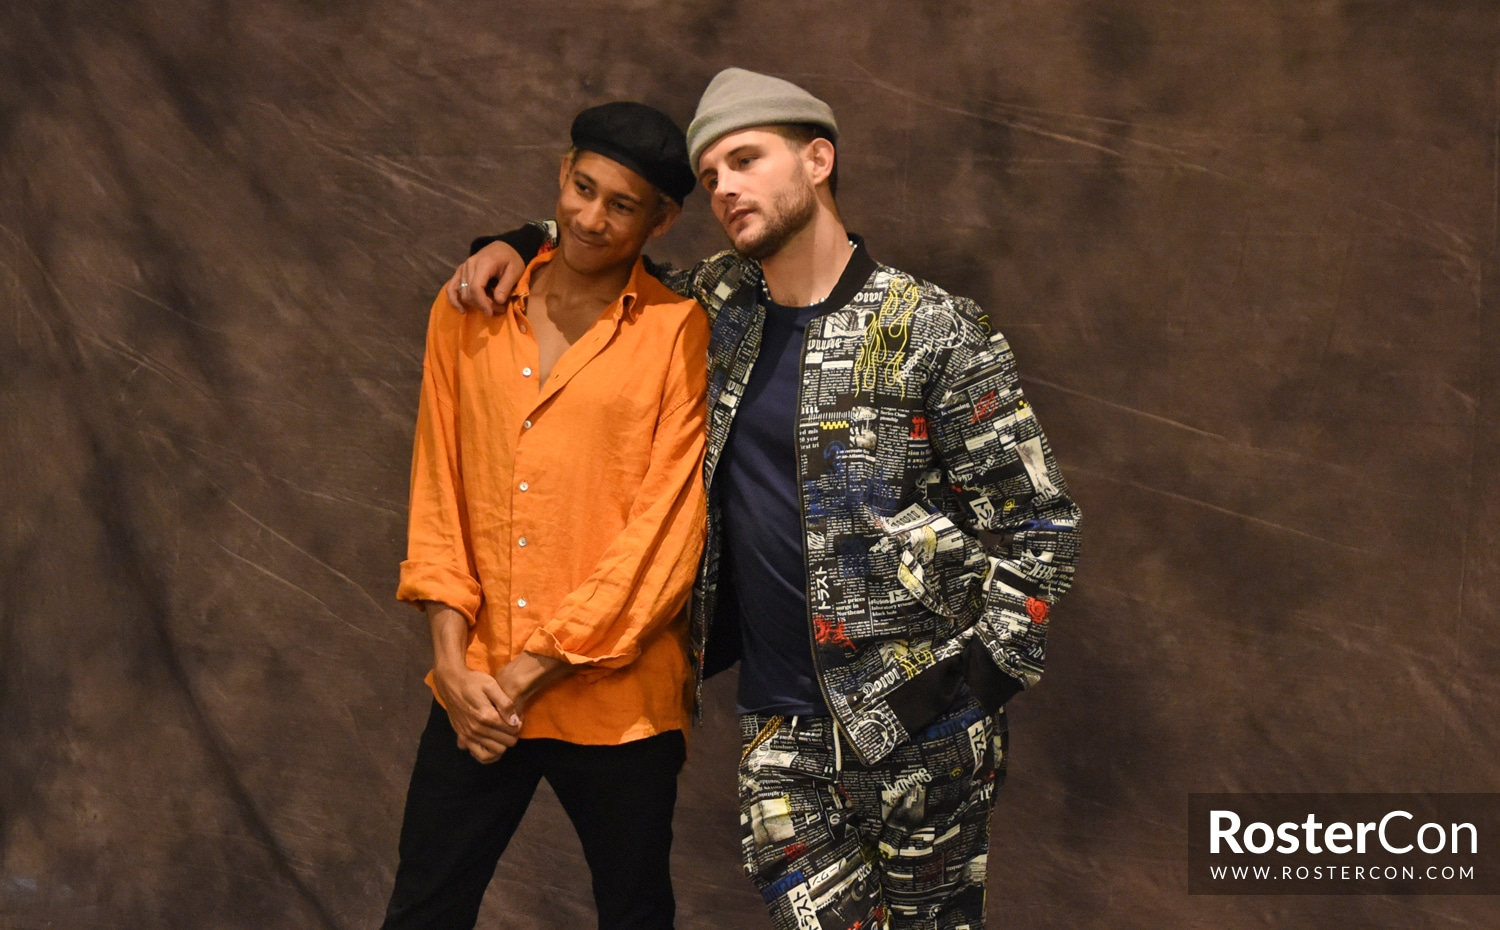 Keiynan Lonsdale & Nico Tortorella - Our Stripes Are Beautiful - Multi-Fandom